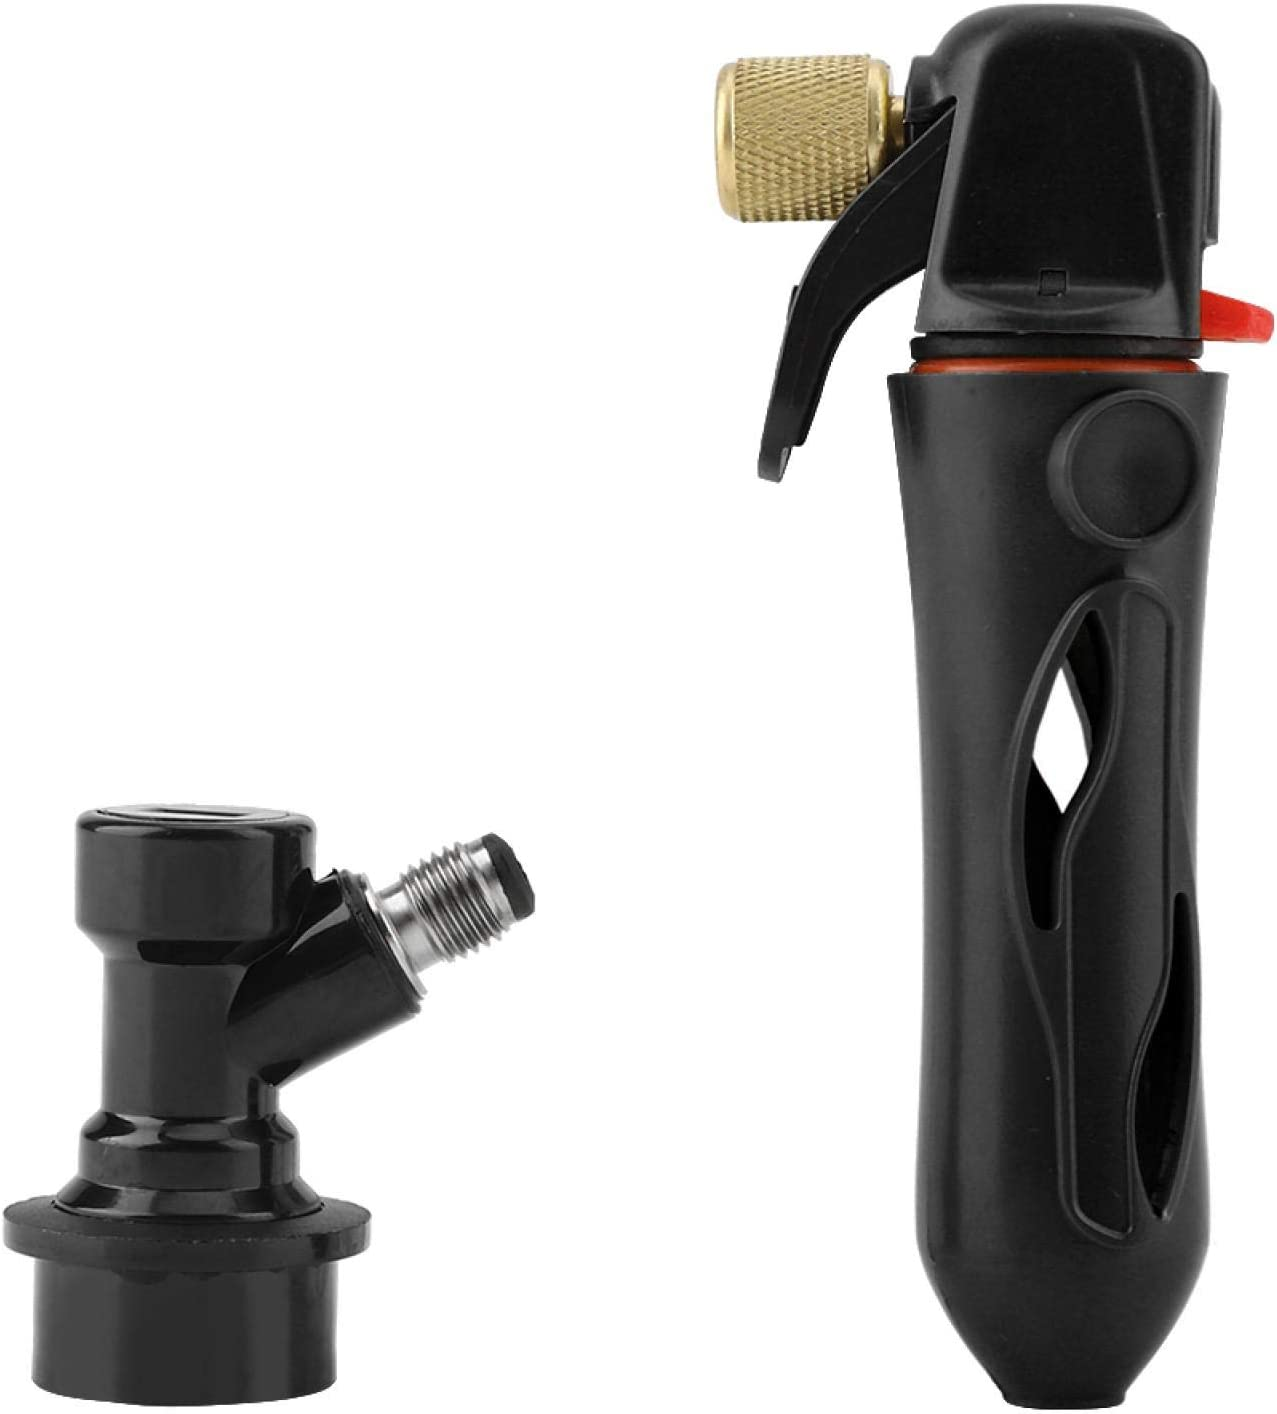 Home Brew Keg Charger Low price Injector CO2 Portable Handheld Max 41% OFF